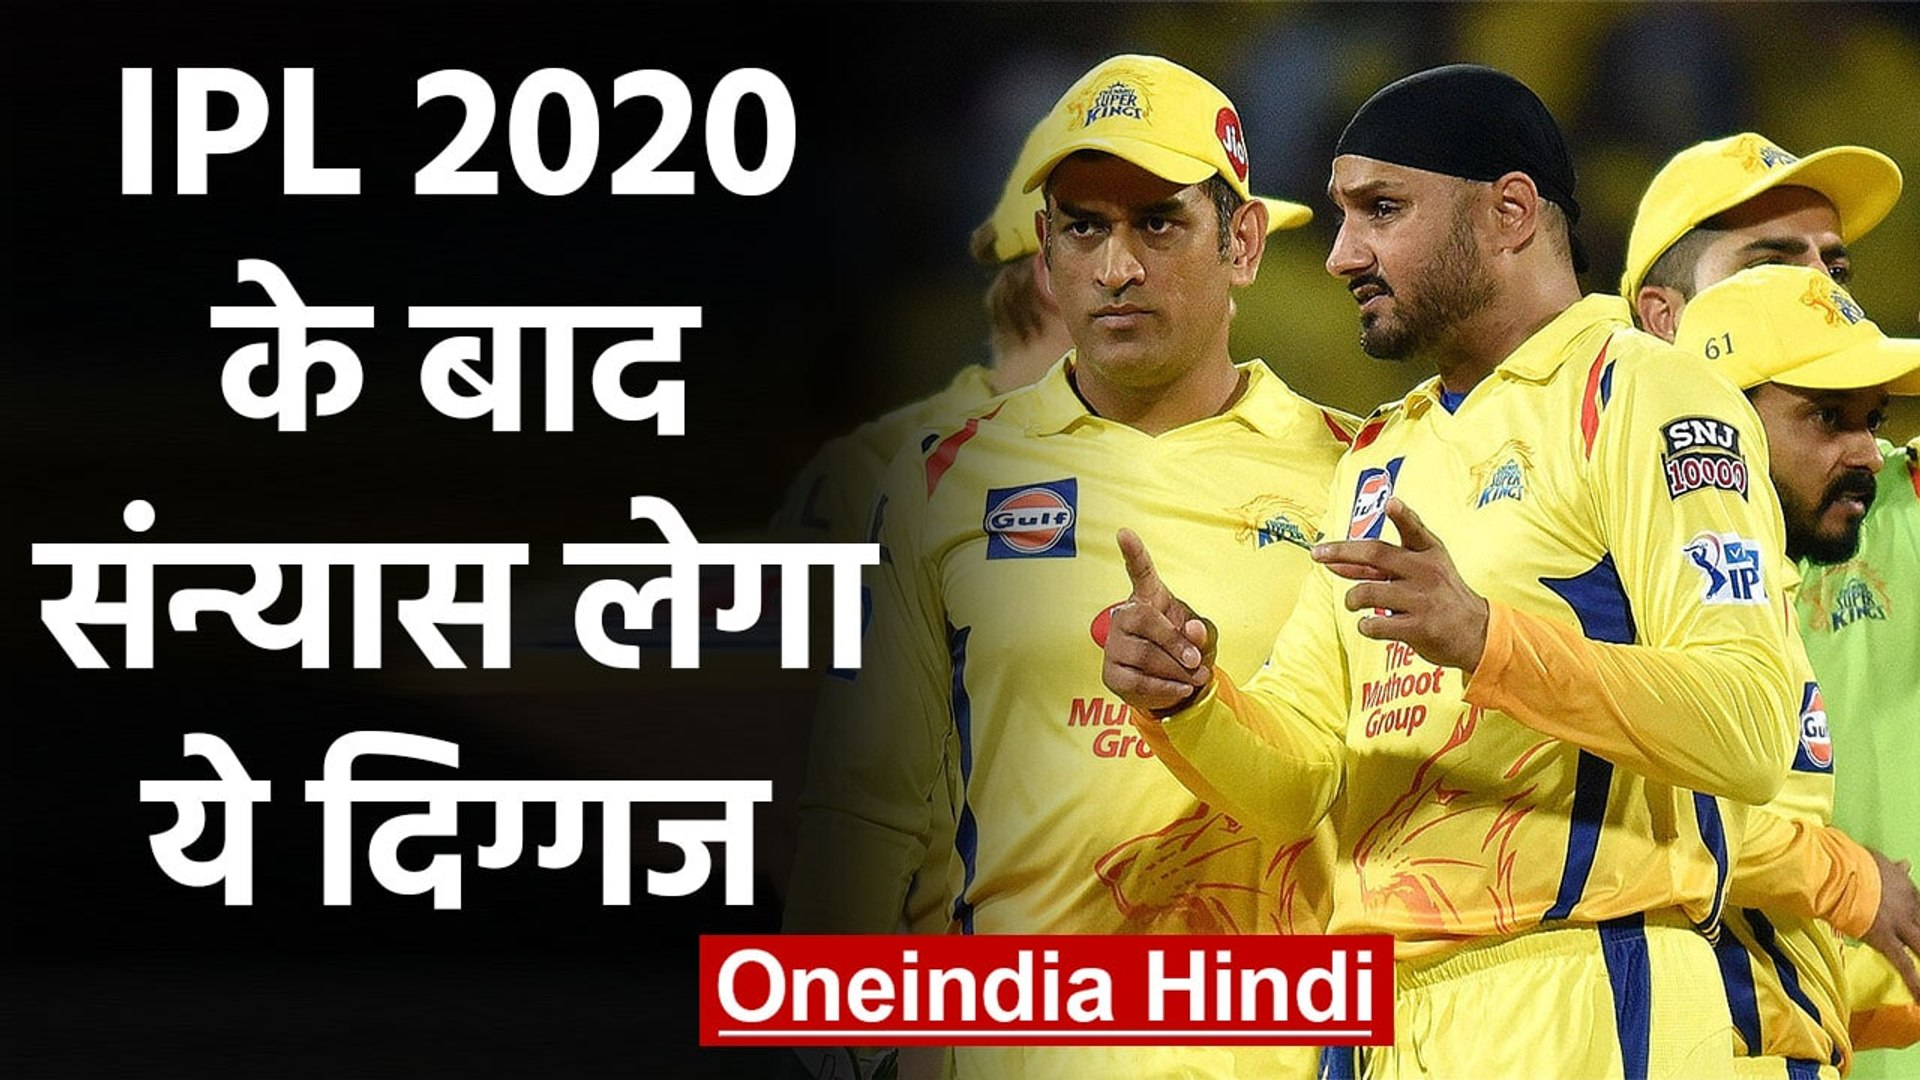 Harbhajan Singh may retire from all forms of cricket during IPL 2020 |वनइंडिया हिंदी